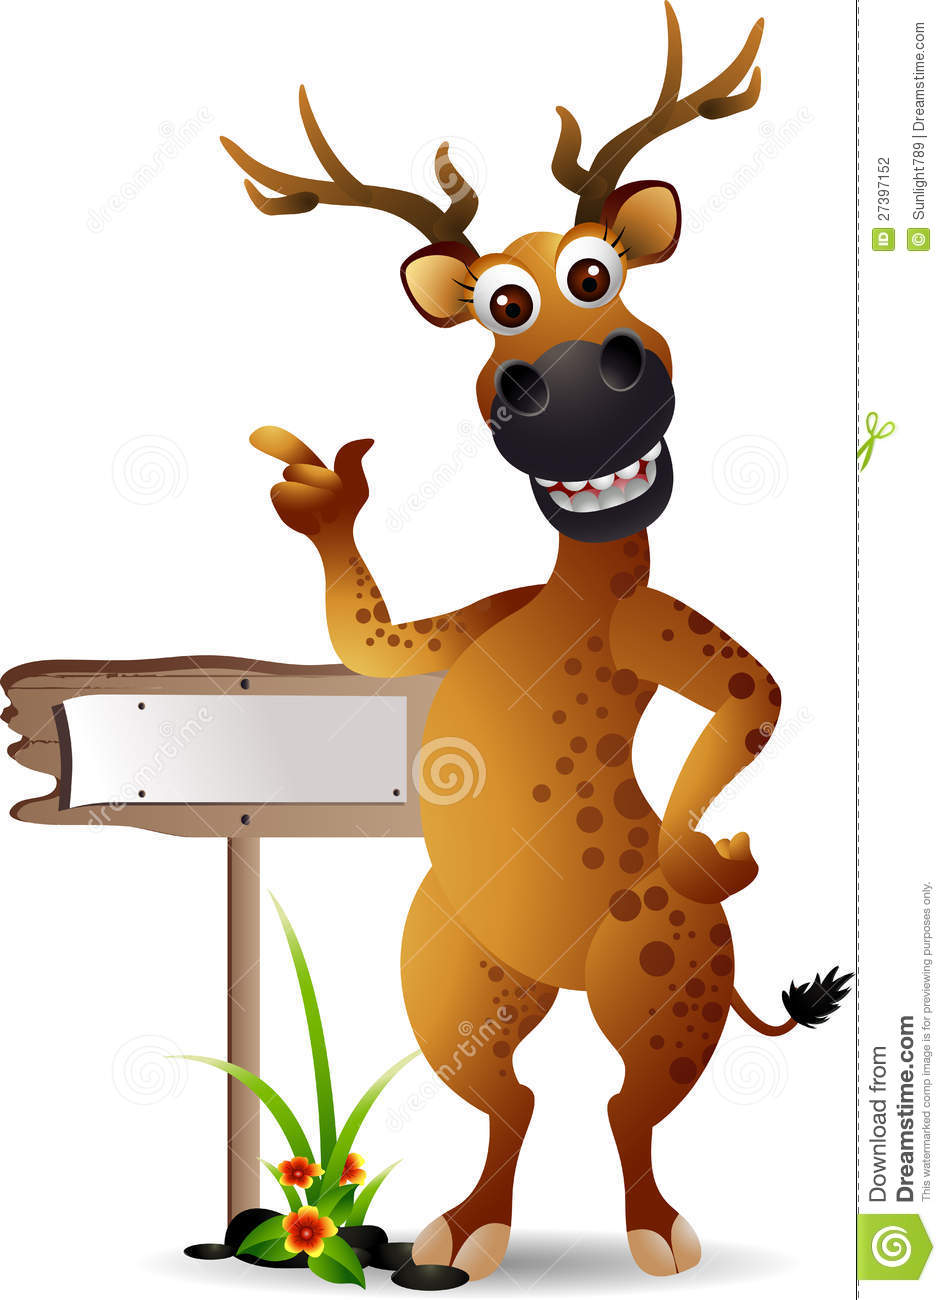 Deer Cartoon With Blank Board Stock Photography - Image: 27397152